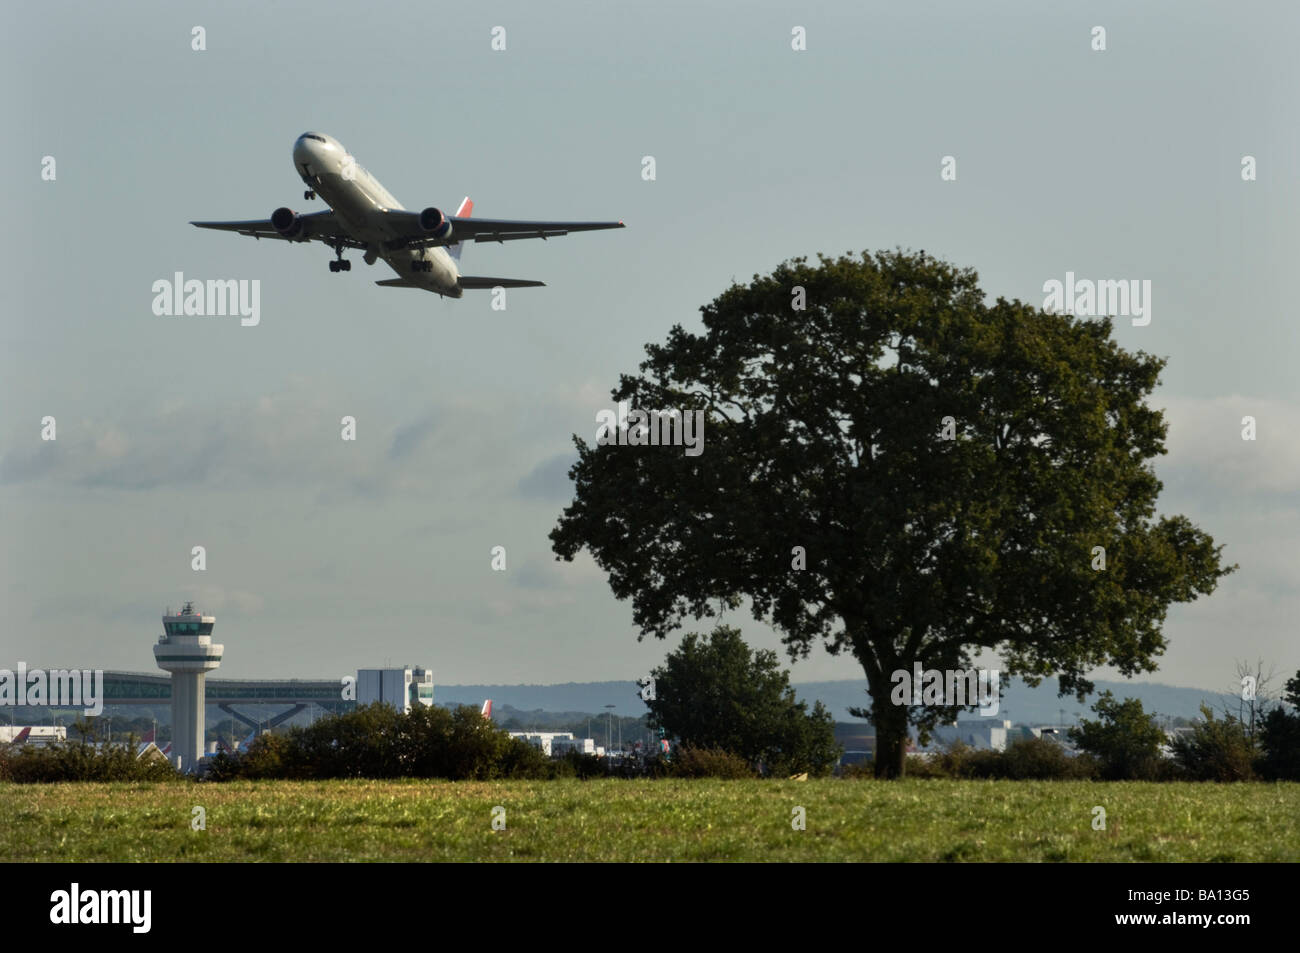 Delta Airbus Jet Airplane takes off over an Oak tree and the Gatwick control tower - Stock Image